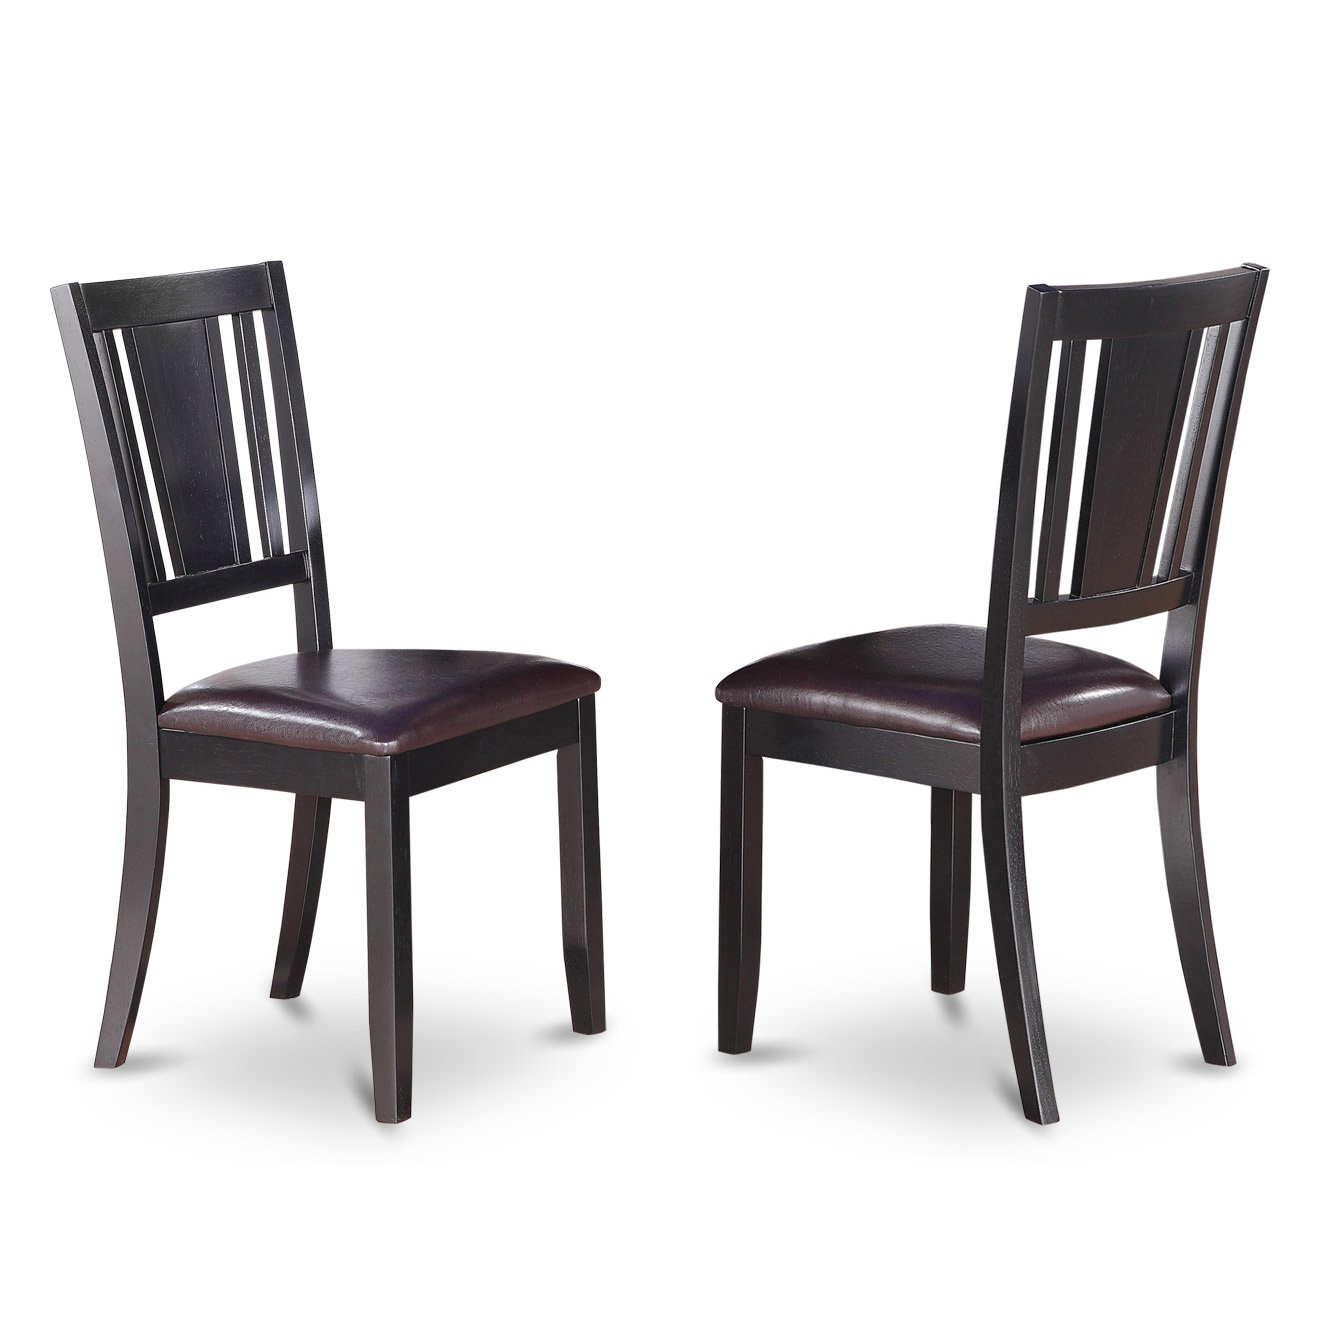 Dudley Dining Chair with Faux Leather upholstered Seat in Black Finish